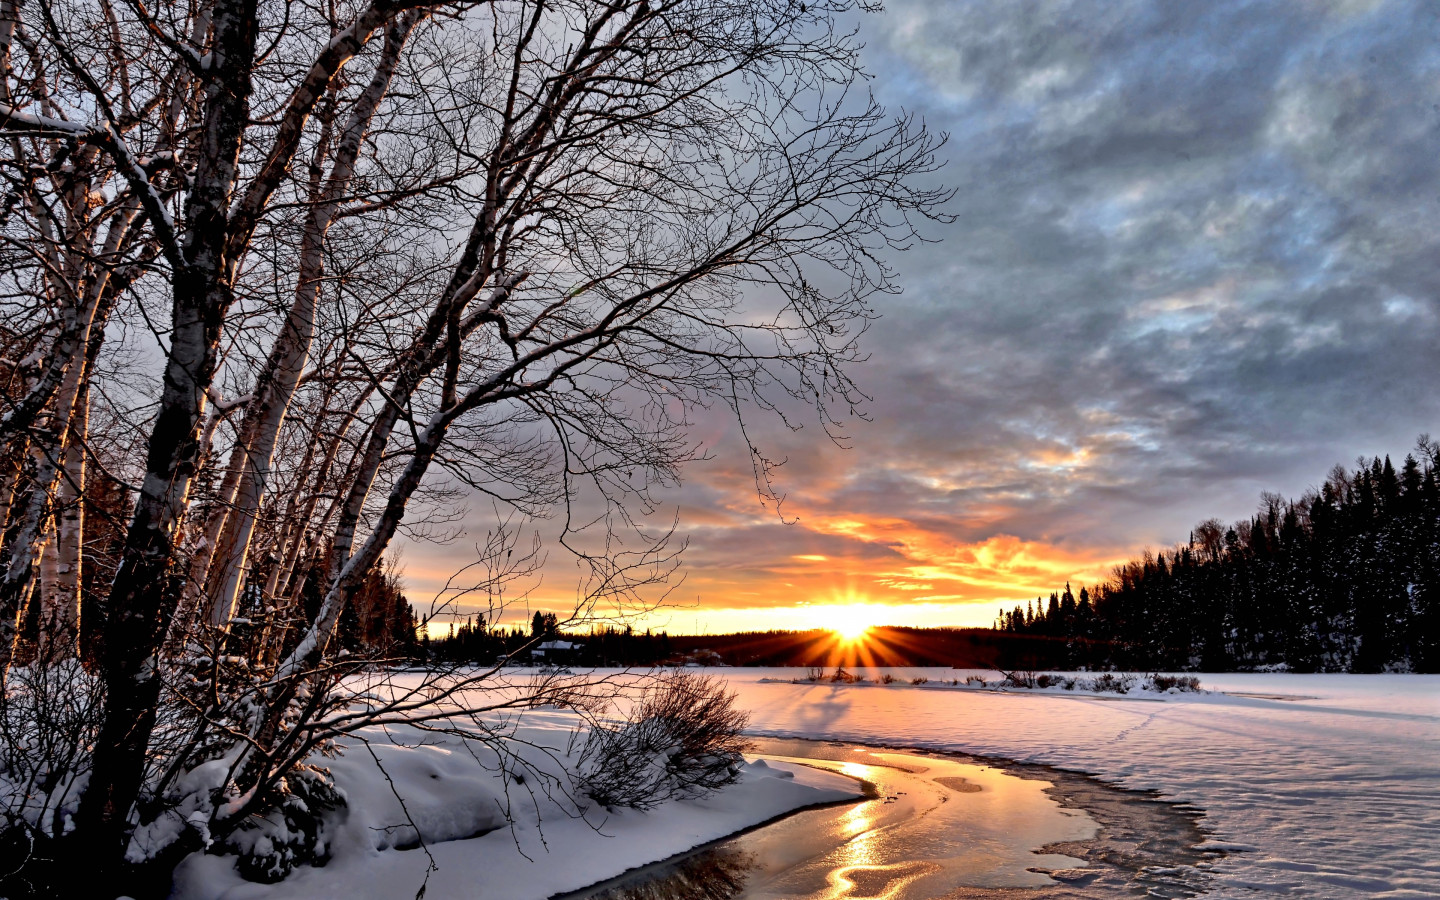 Sunset over the Winter landscape wallpaper 1440x900